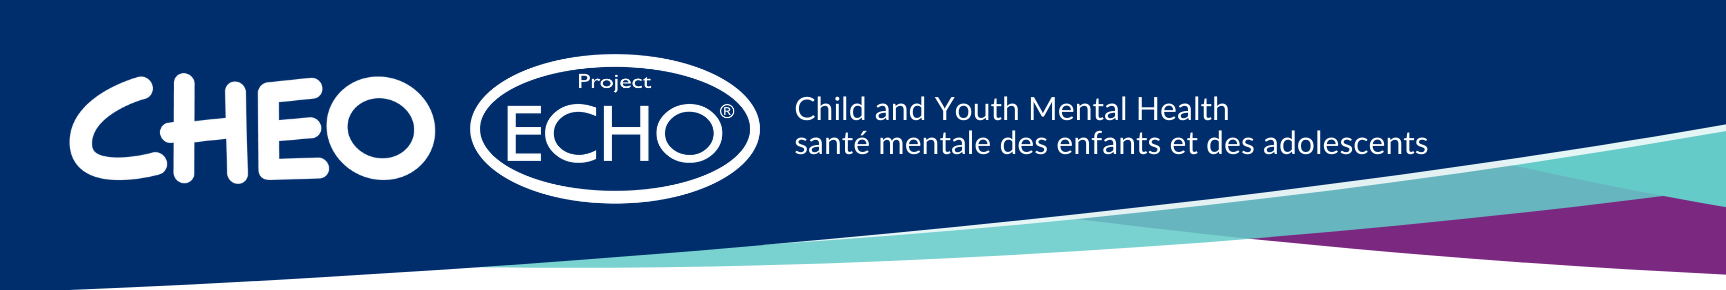 ECHO Ontario Child and Youth Mental Health at CHEO